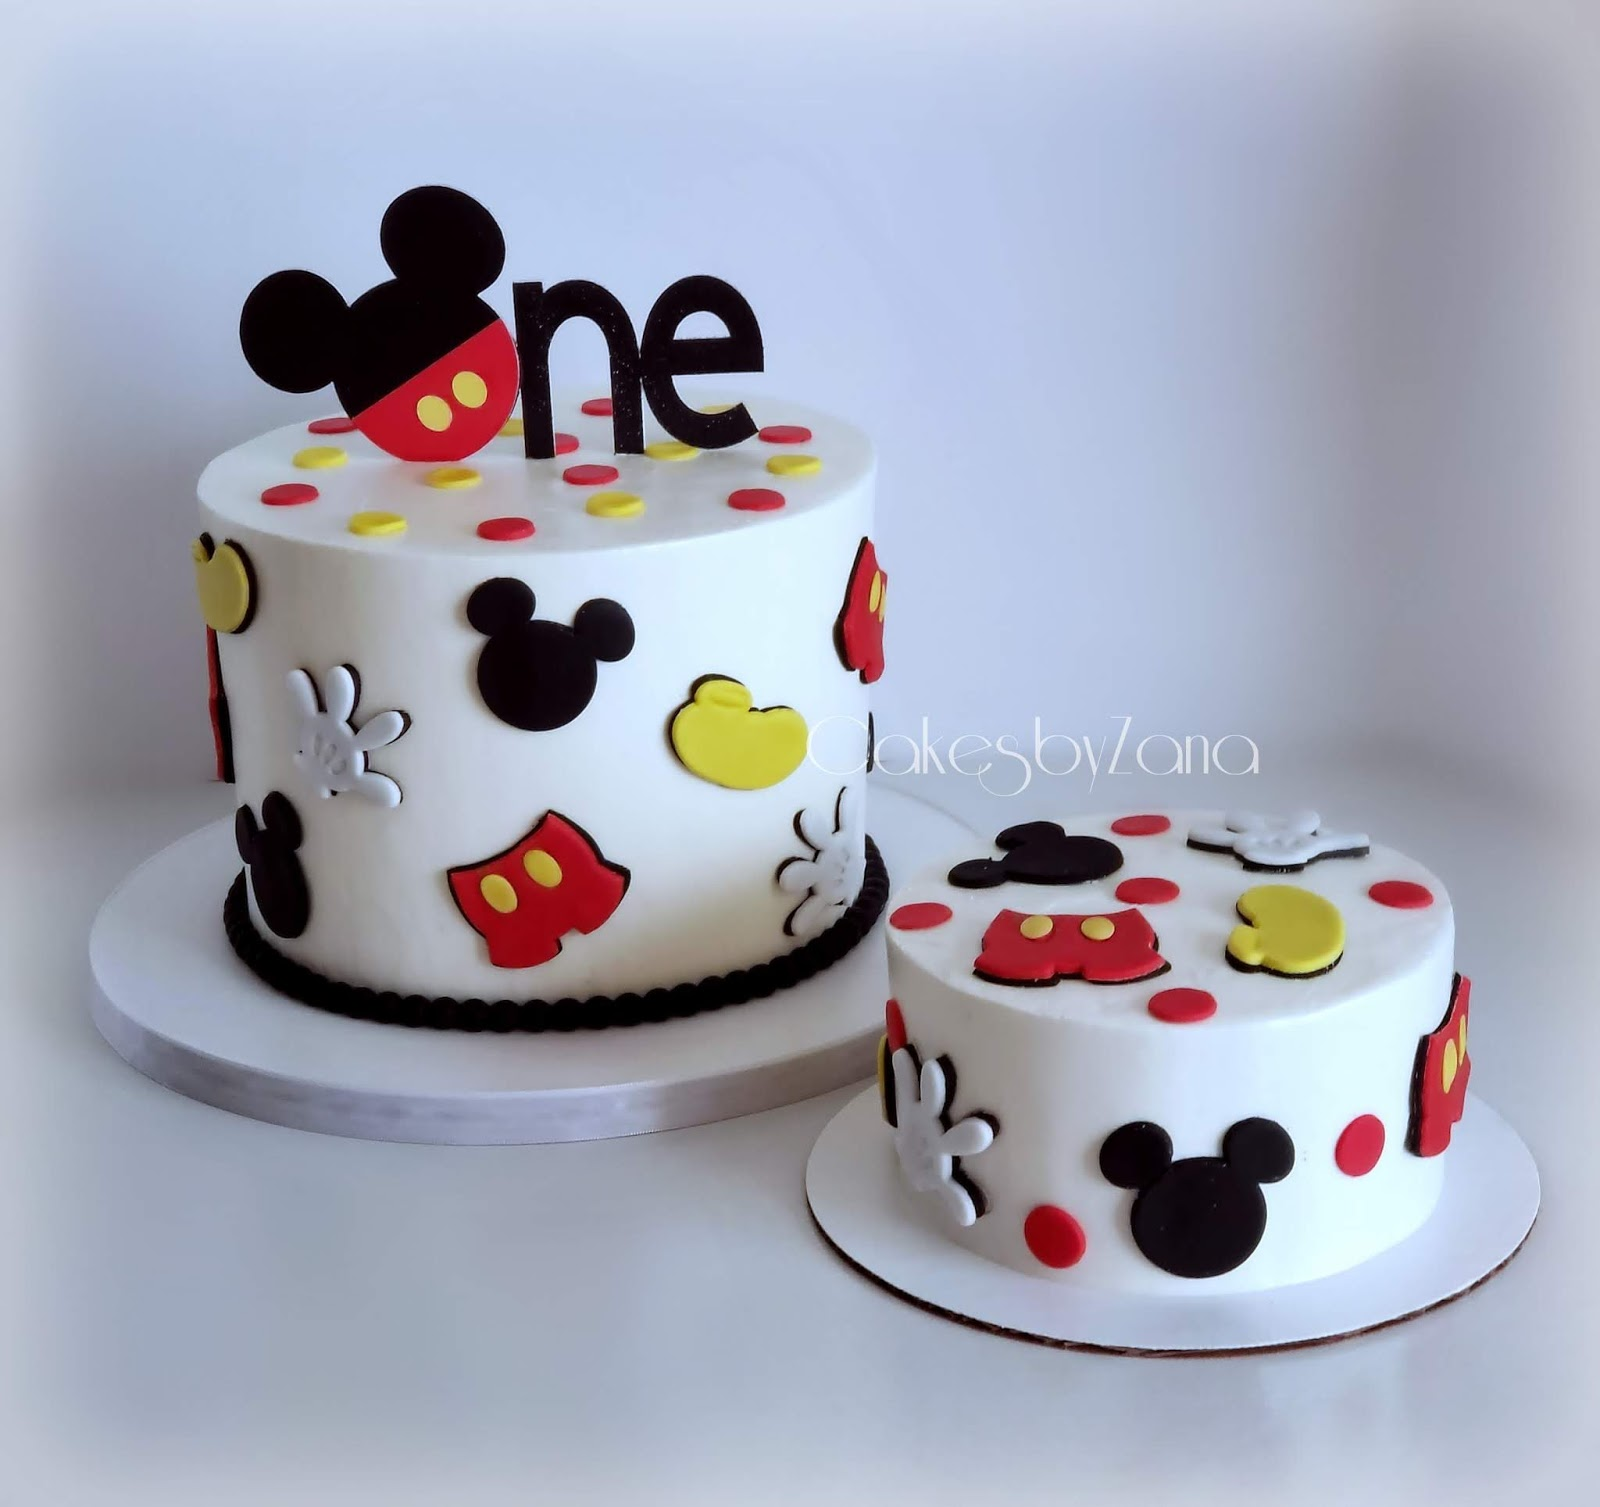 Excellent Cakesbyzana Mickey Mouse 1St Birthday Cake Personalised Birthday Cards Petedlily Jamesorg